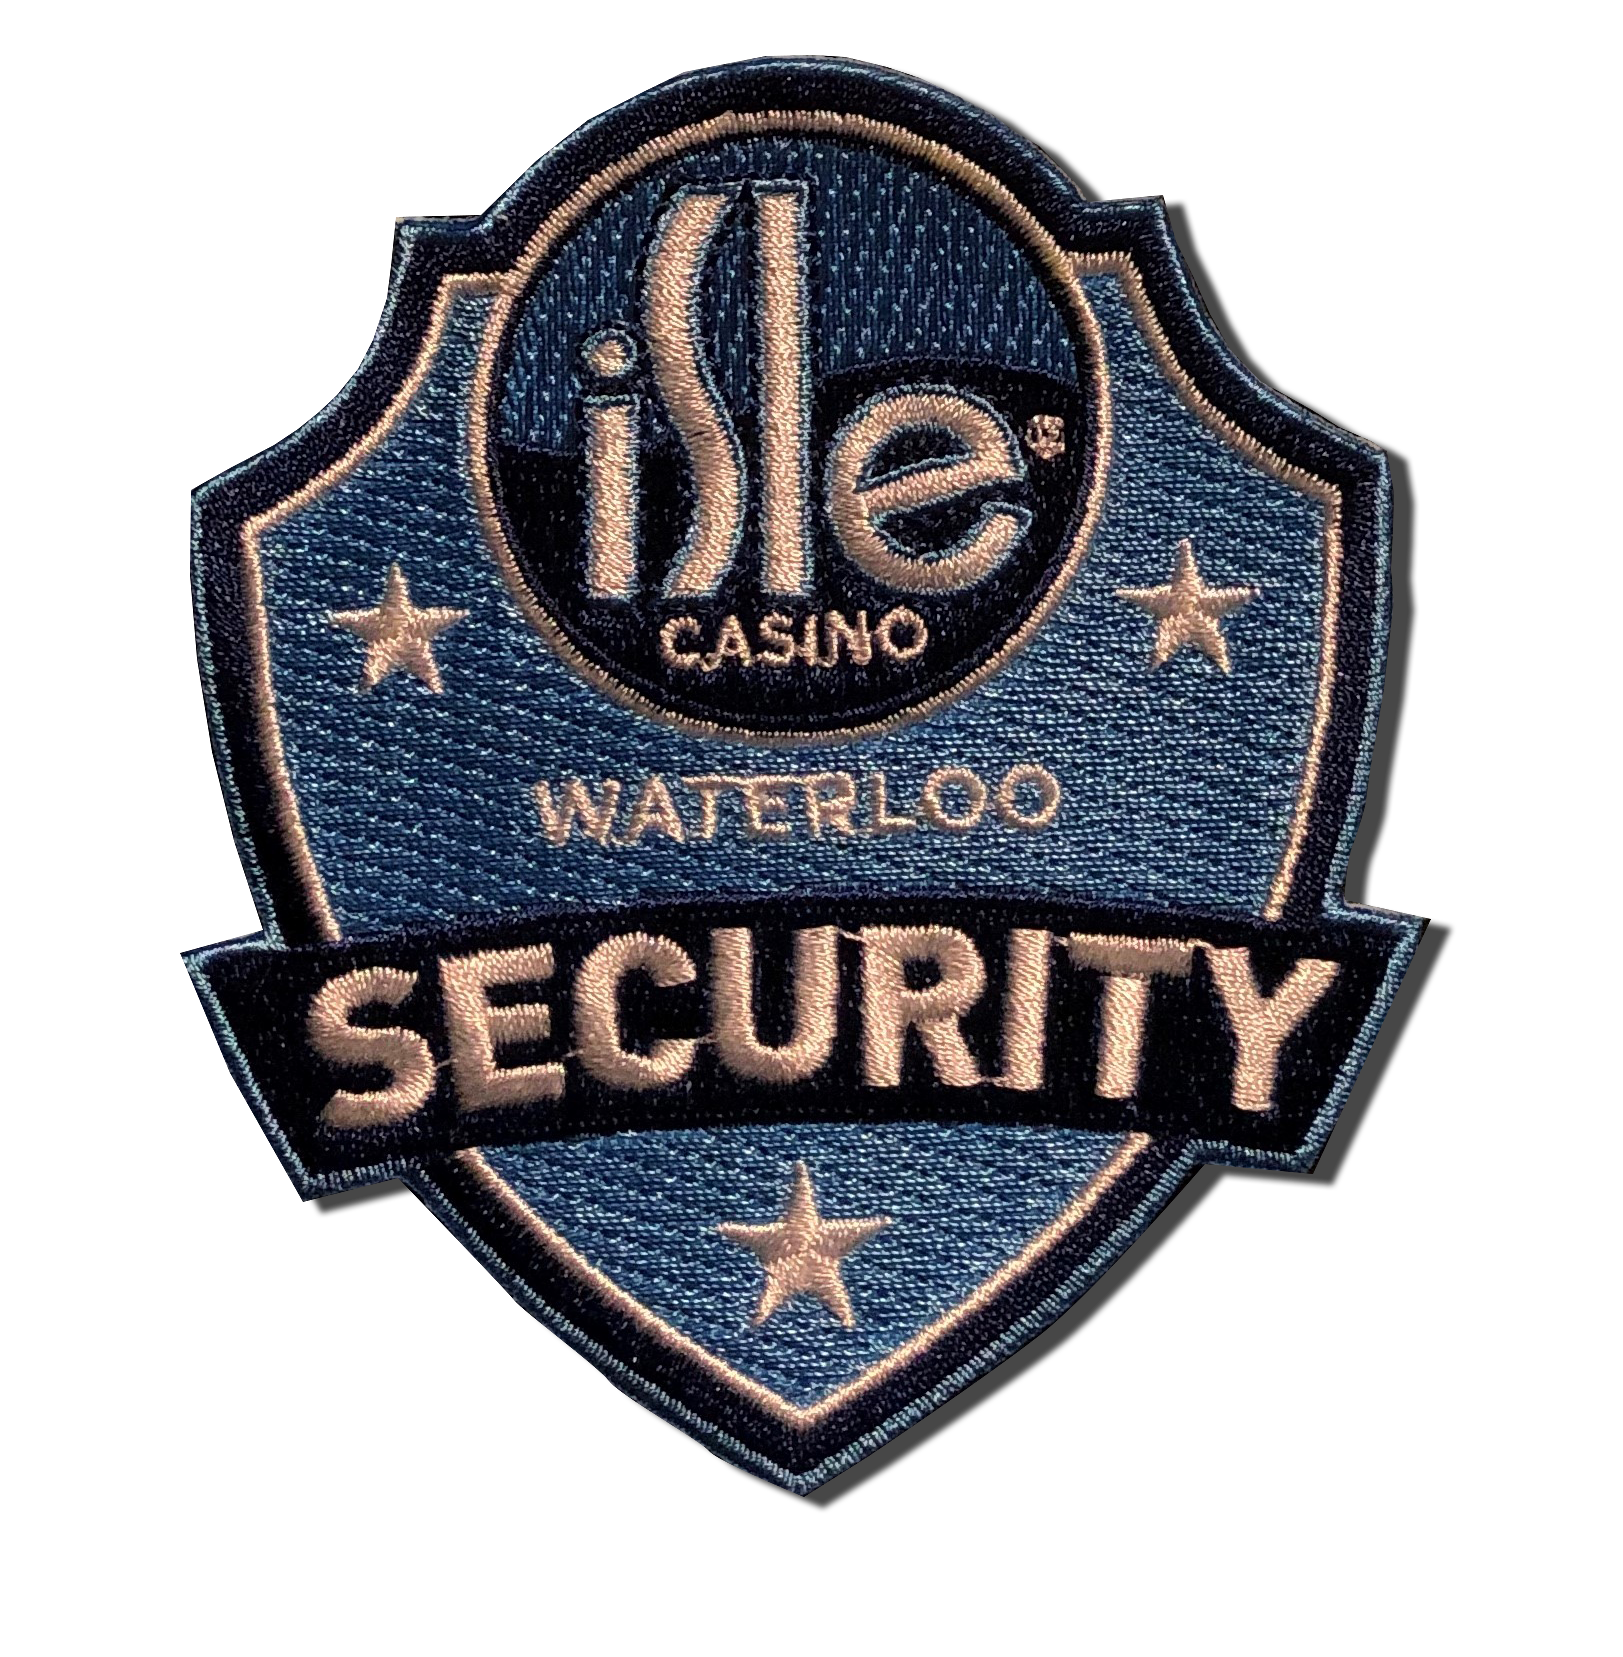 A-B Emblem Photo Gallery Image. Isle Casino Waterloo Security Patch